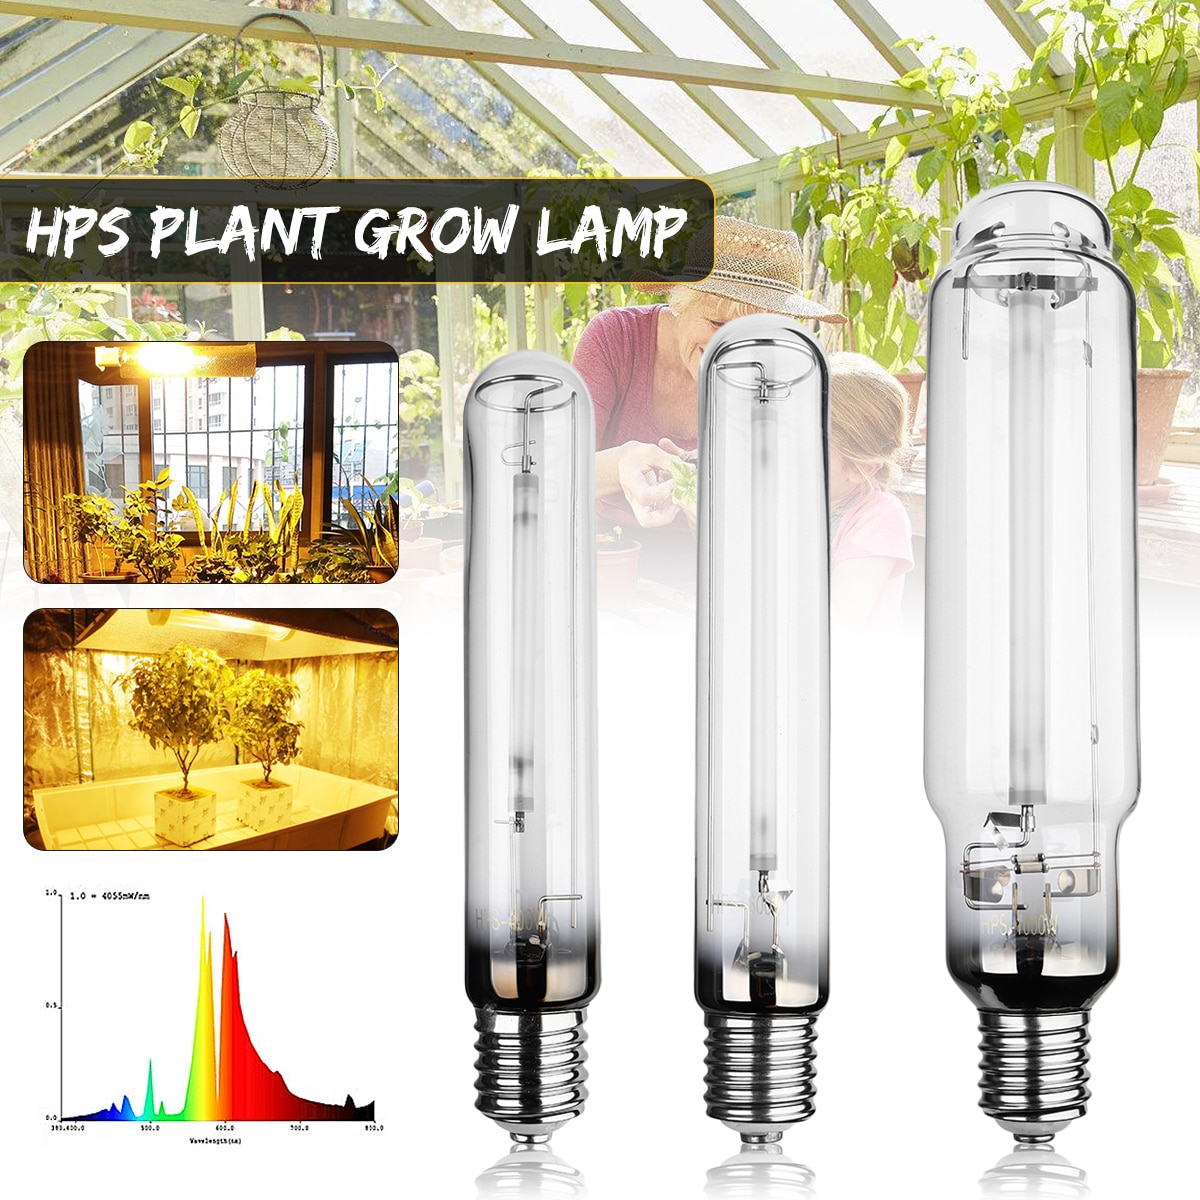 400W 600W 1000W Smuxi E40 23Ra HPS Plant Grow Lamp High Pressure Sodium Lamp Energy Efficient Long Service Life 23000 Hours